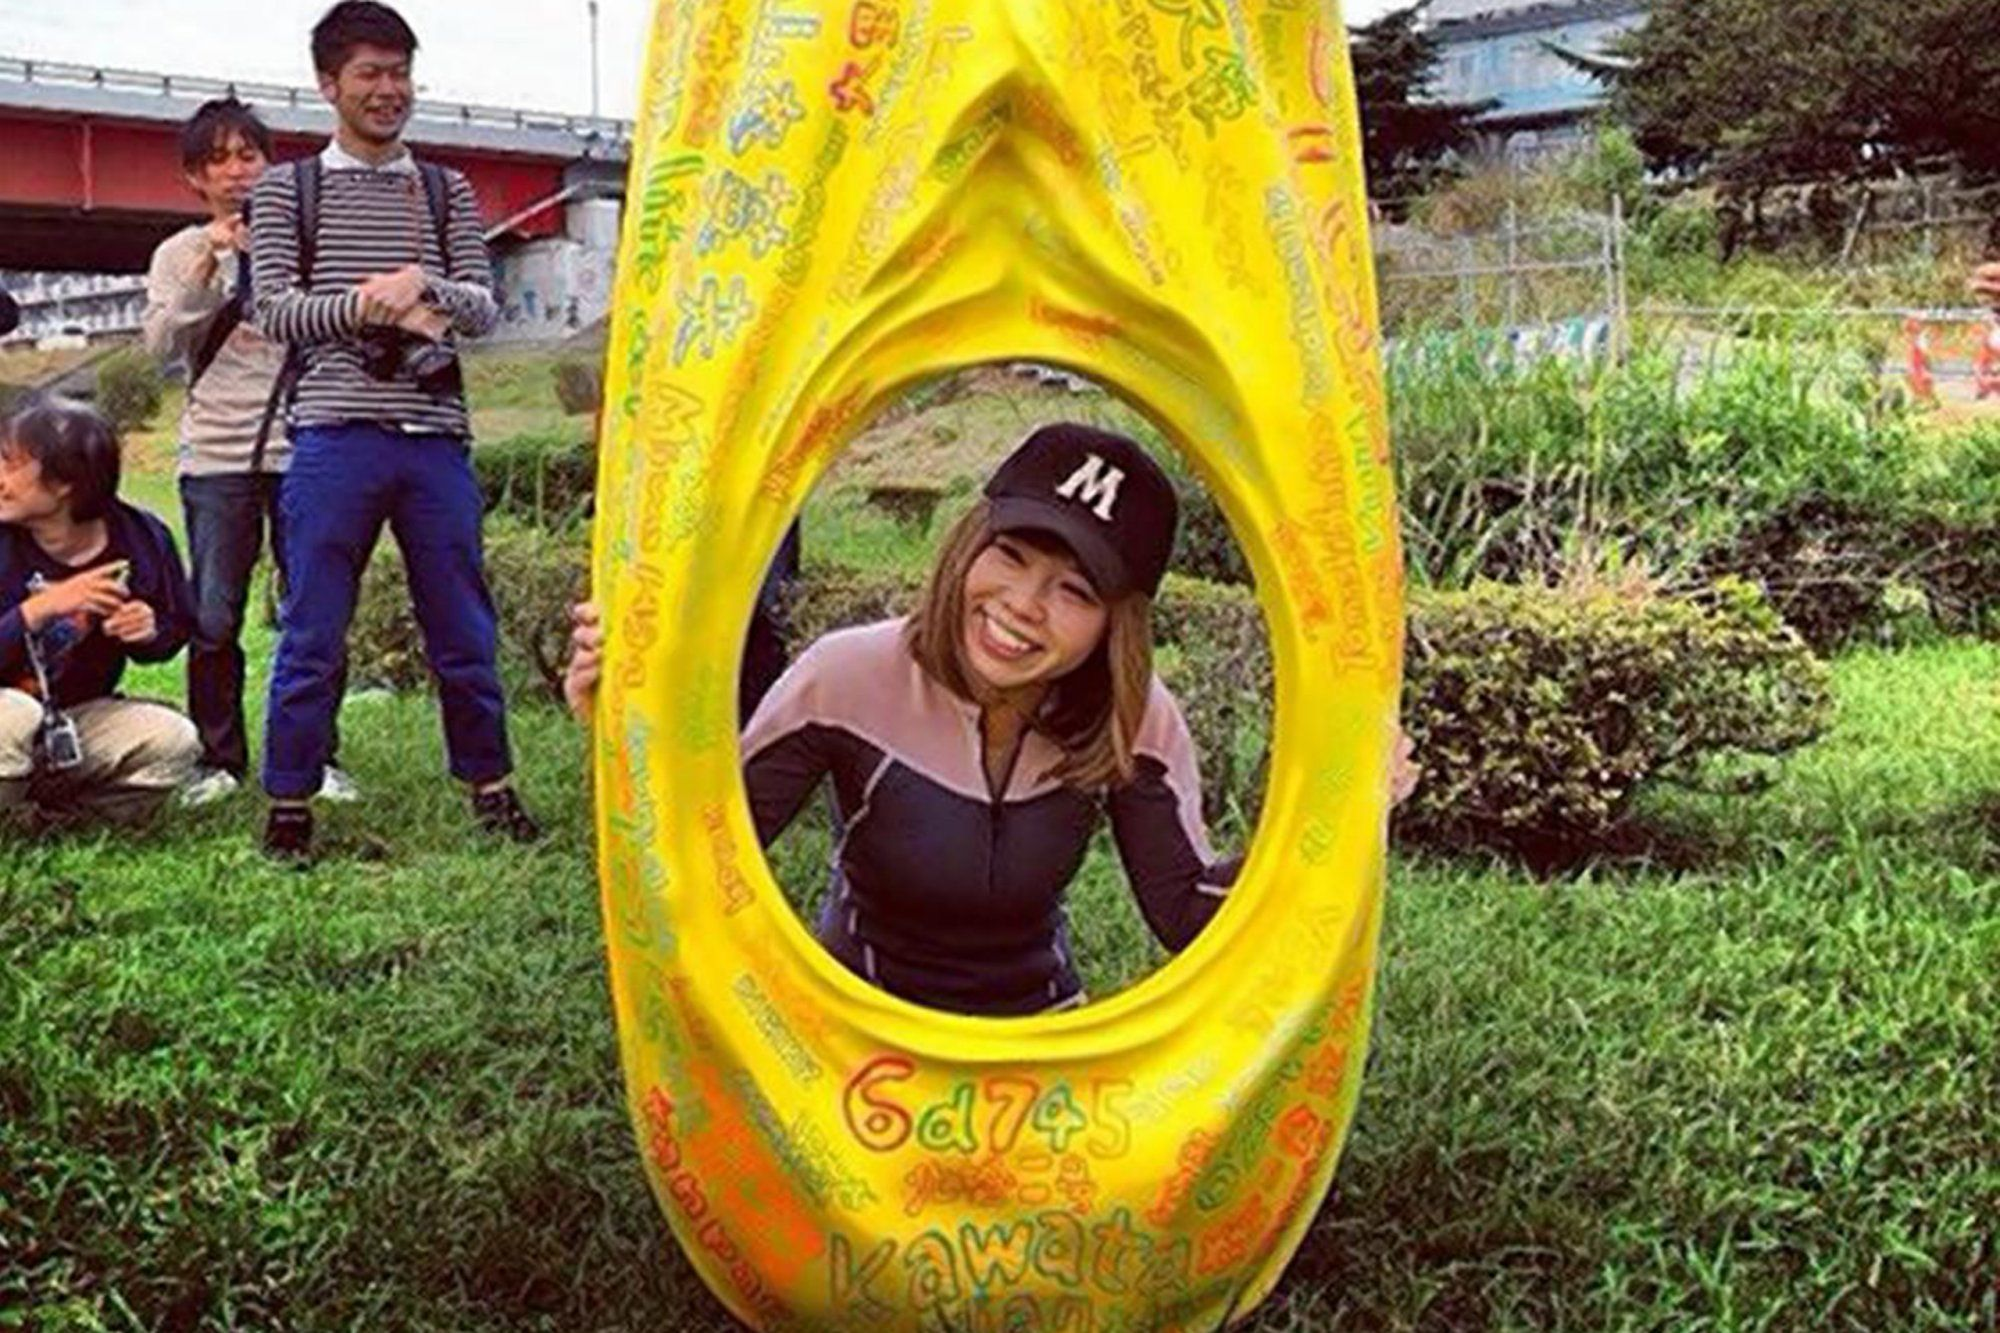 Japanese artist Megumi Igarashi's vagina kayak is considered obscene, but an annual penis festival is a family event. What's the deal?